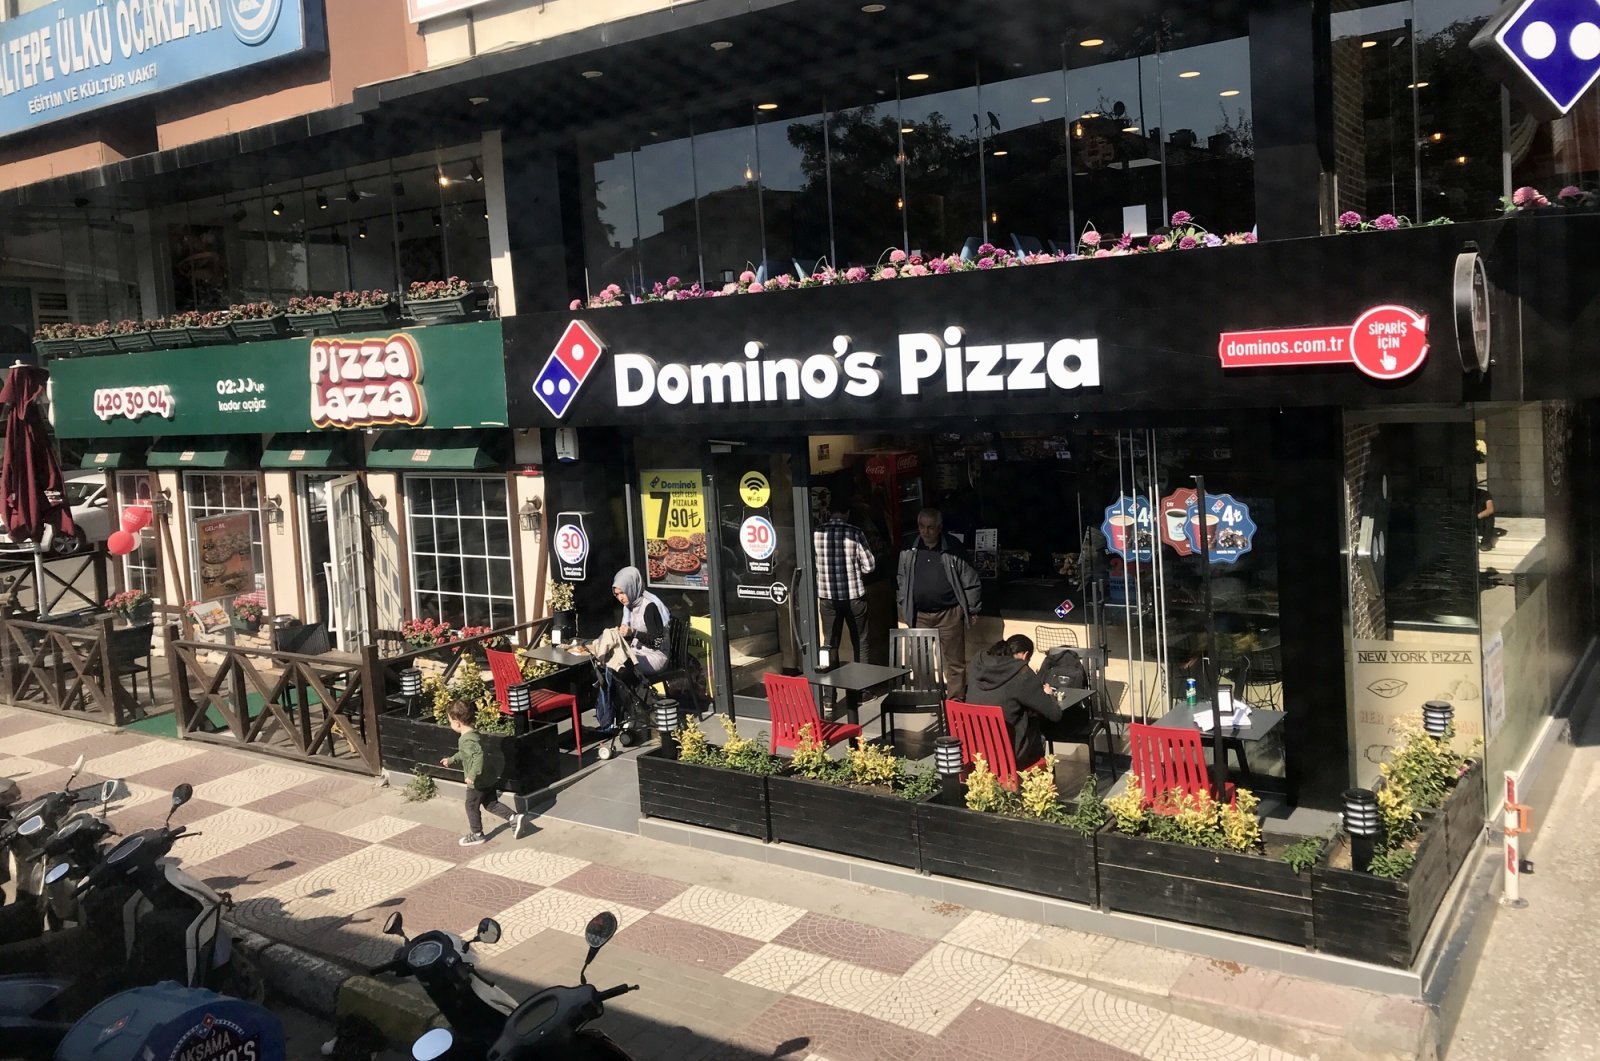 A branch of Domino's Pizza, run by DP Eurasia, is seen in the Maltepe district of Istanbul, Turkey, Oct. 11, 2017. (iStock Photo)